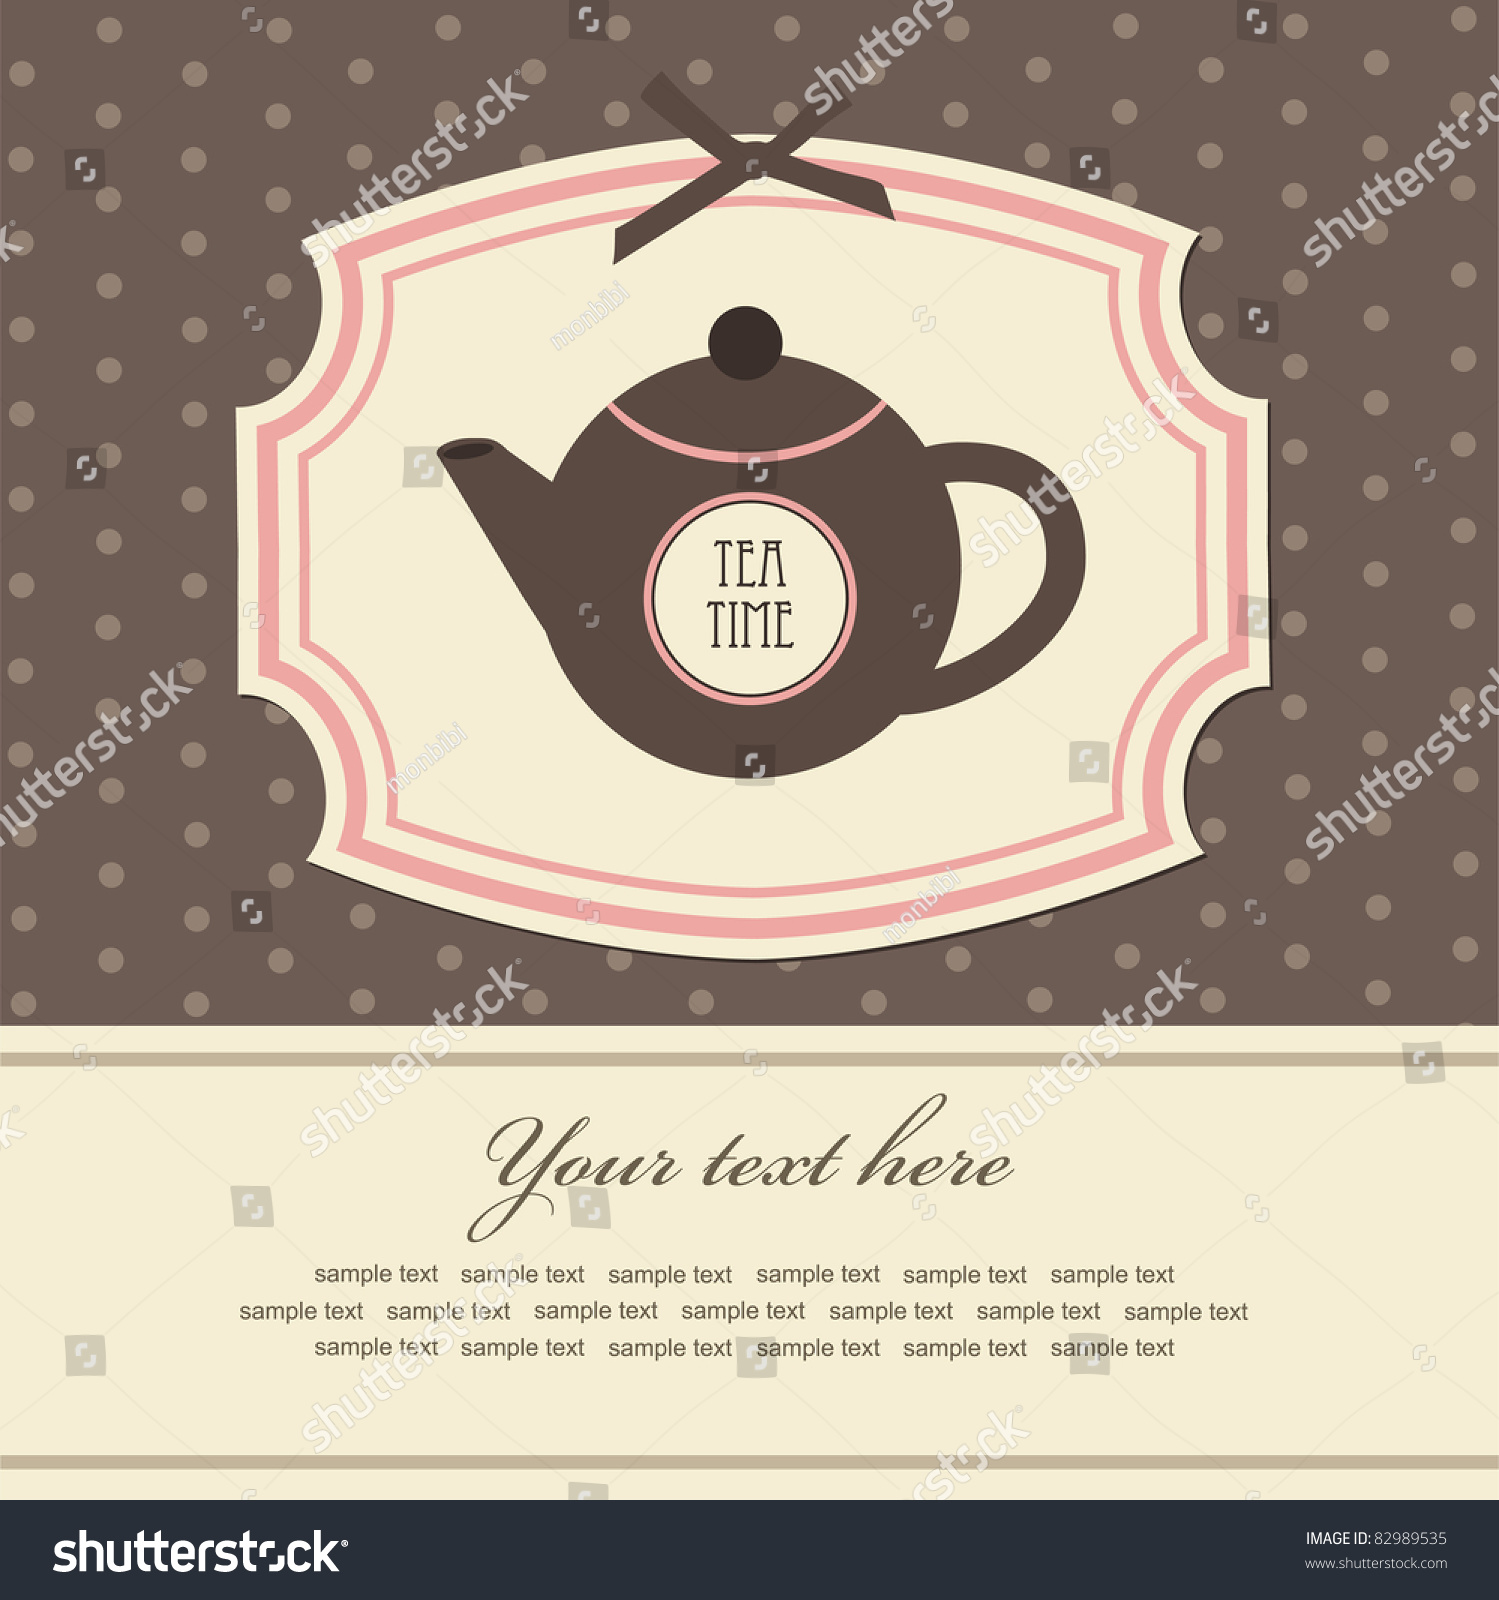 Vintage Card With Teapot. Vector Illustration - 82989535 ...